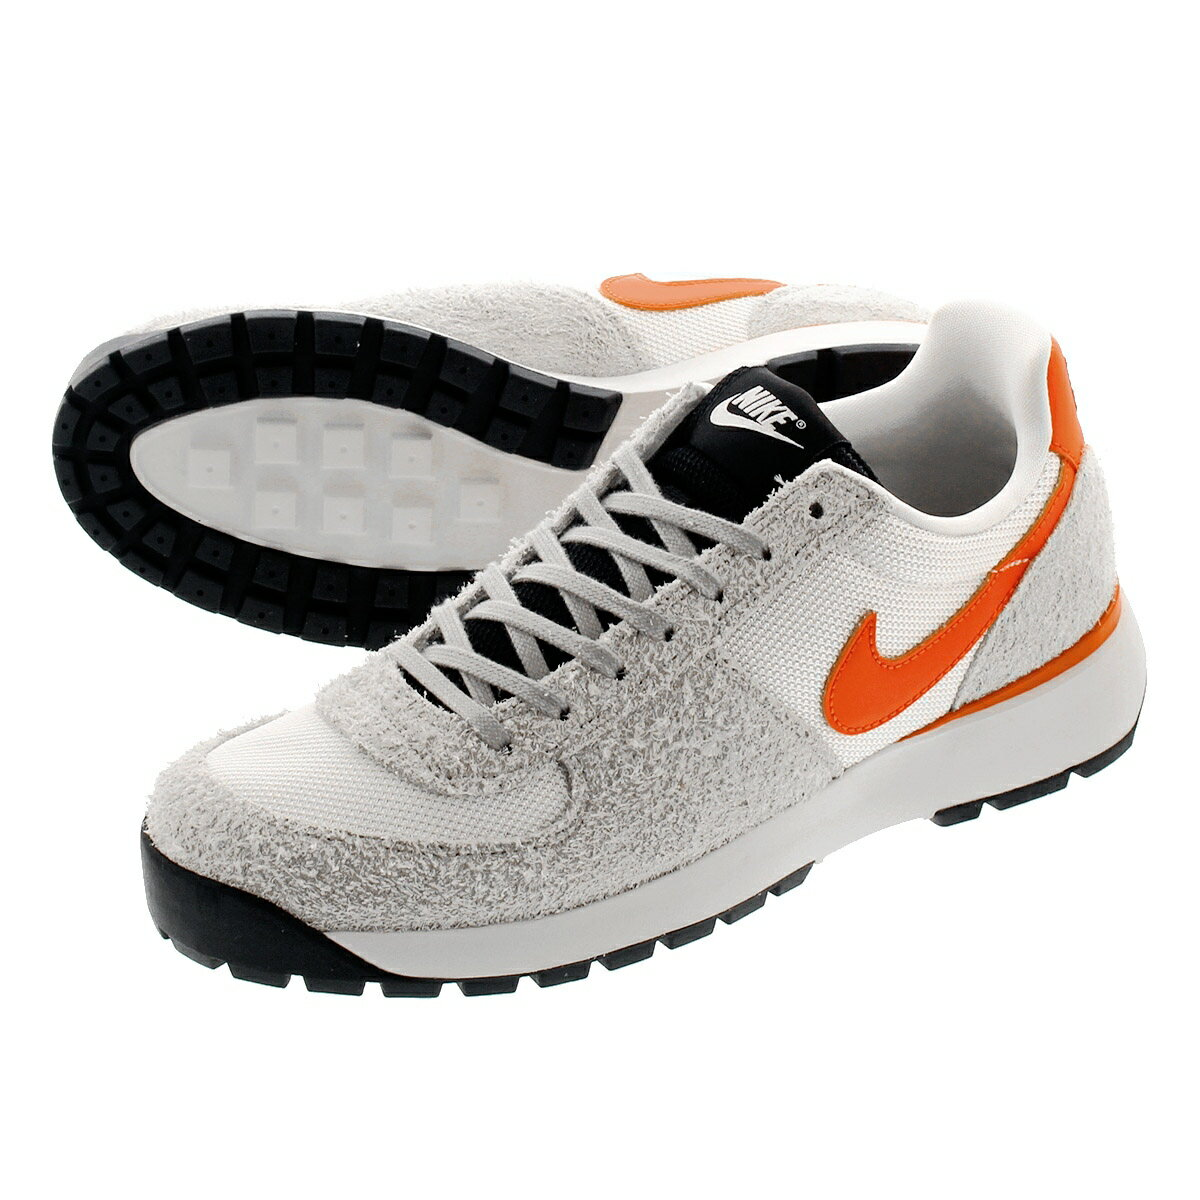 メンズ靴, スニーカー NIKE LAVADOME ULTRA STONE GREYSAFETY ORANGE 844574-001